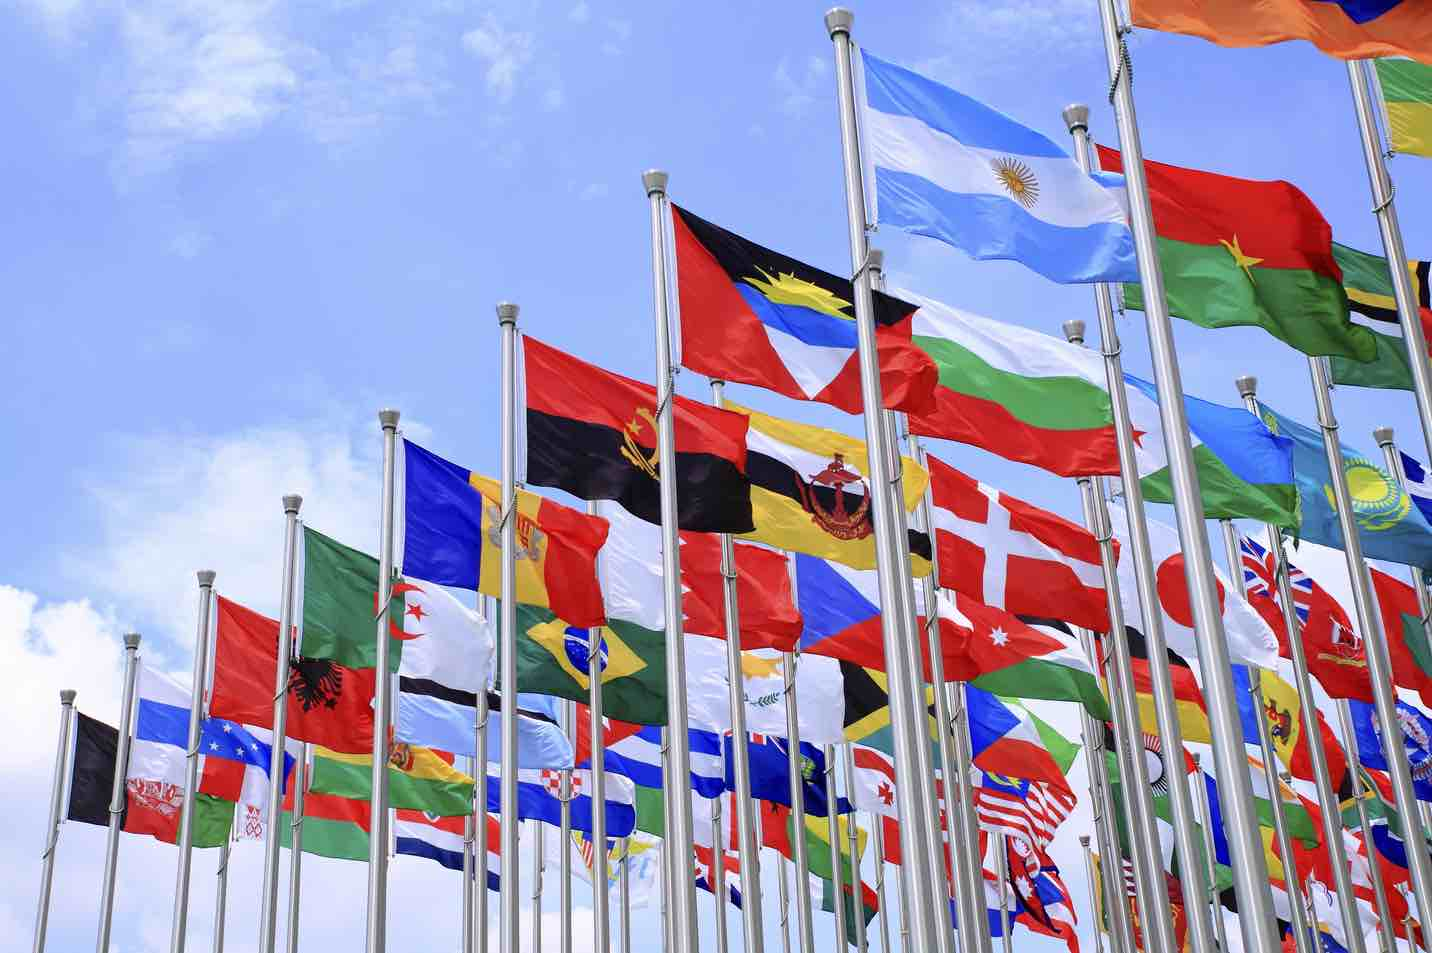 An image of world flags